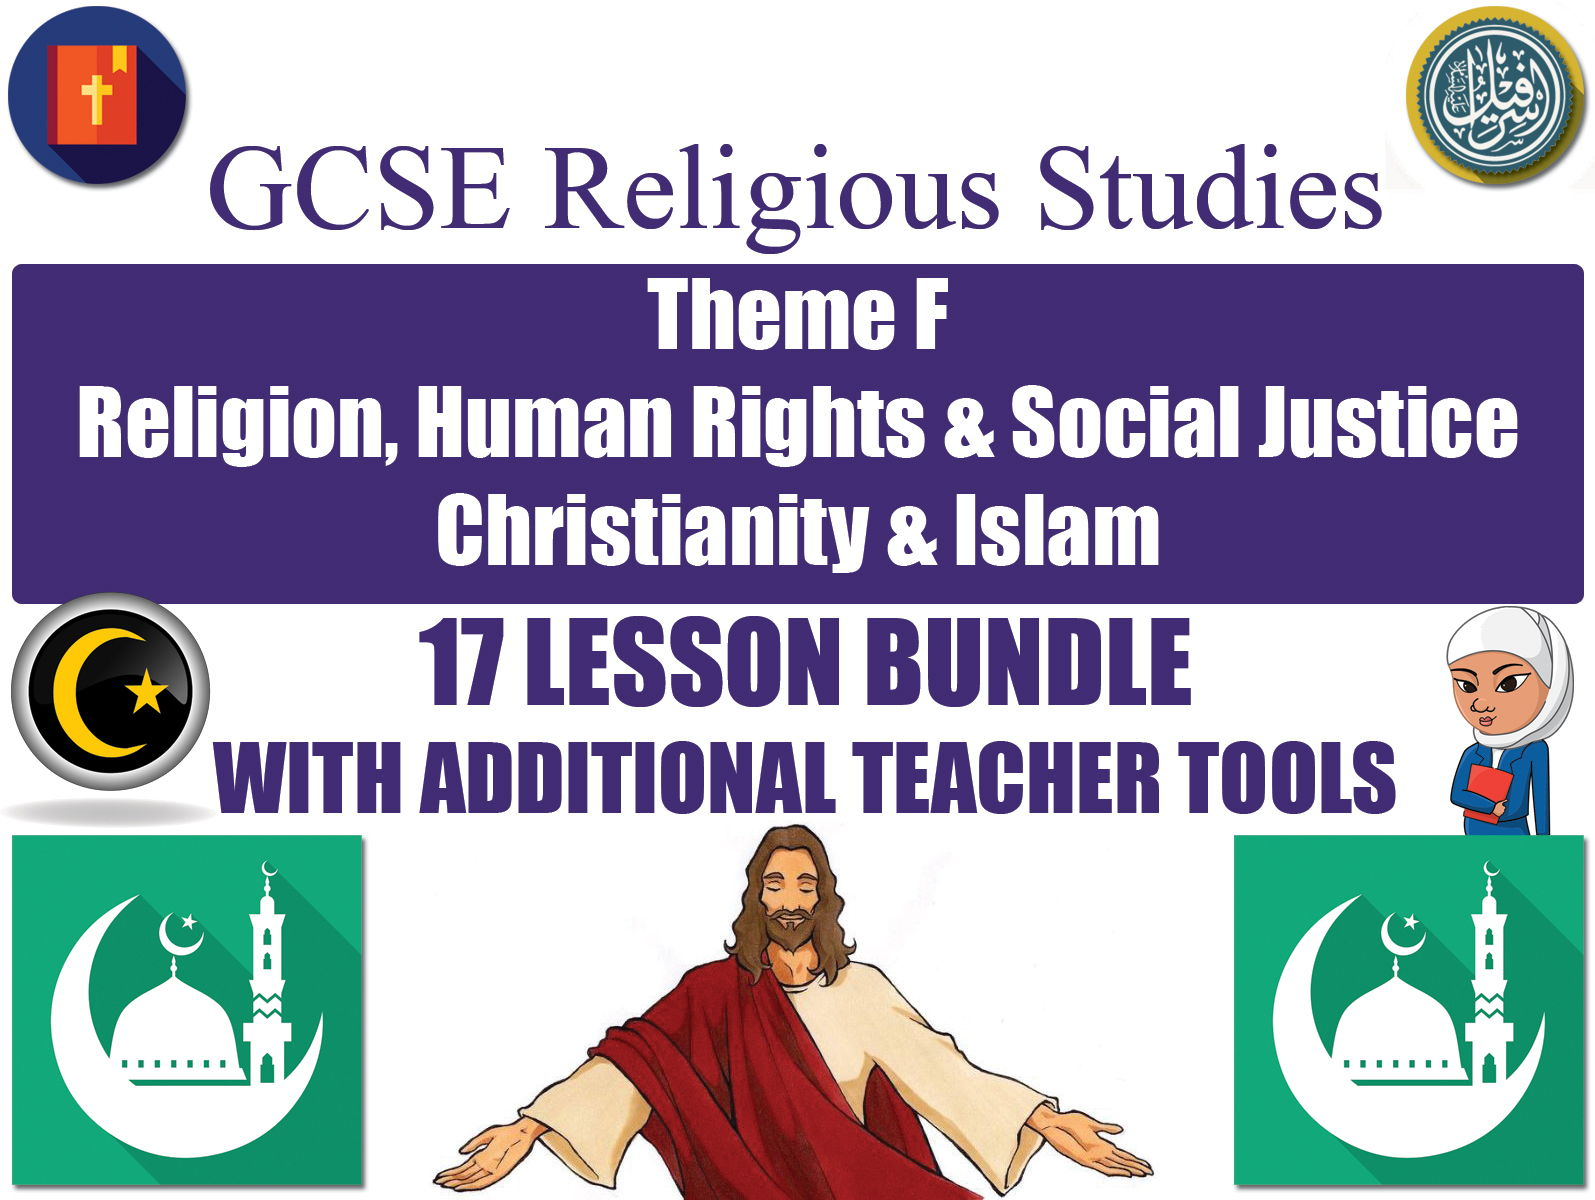 GCSE Islam & Christianity - Religion, Human Rights & Social Justice (17 Lessons)